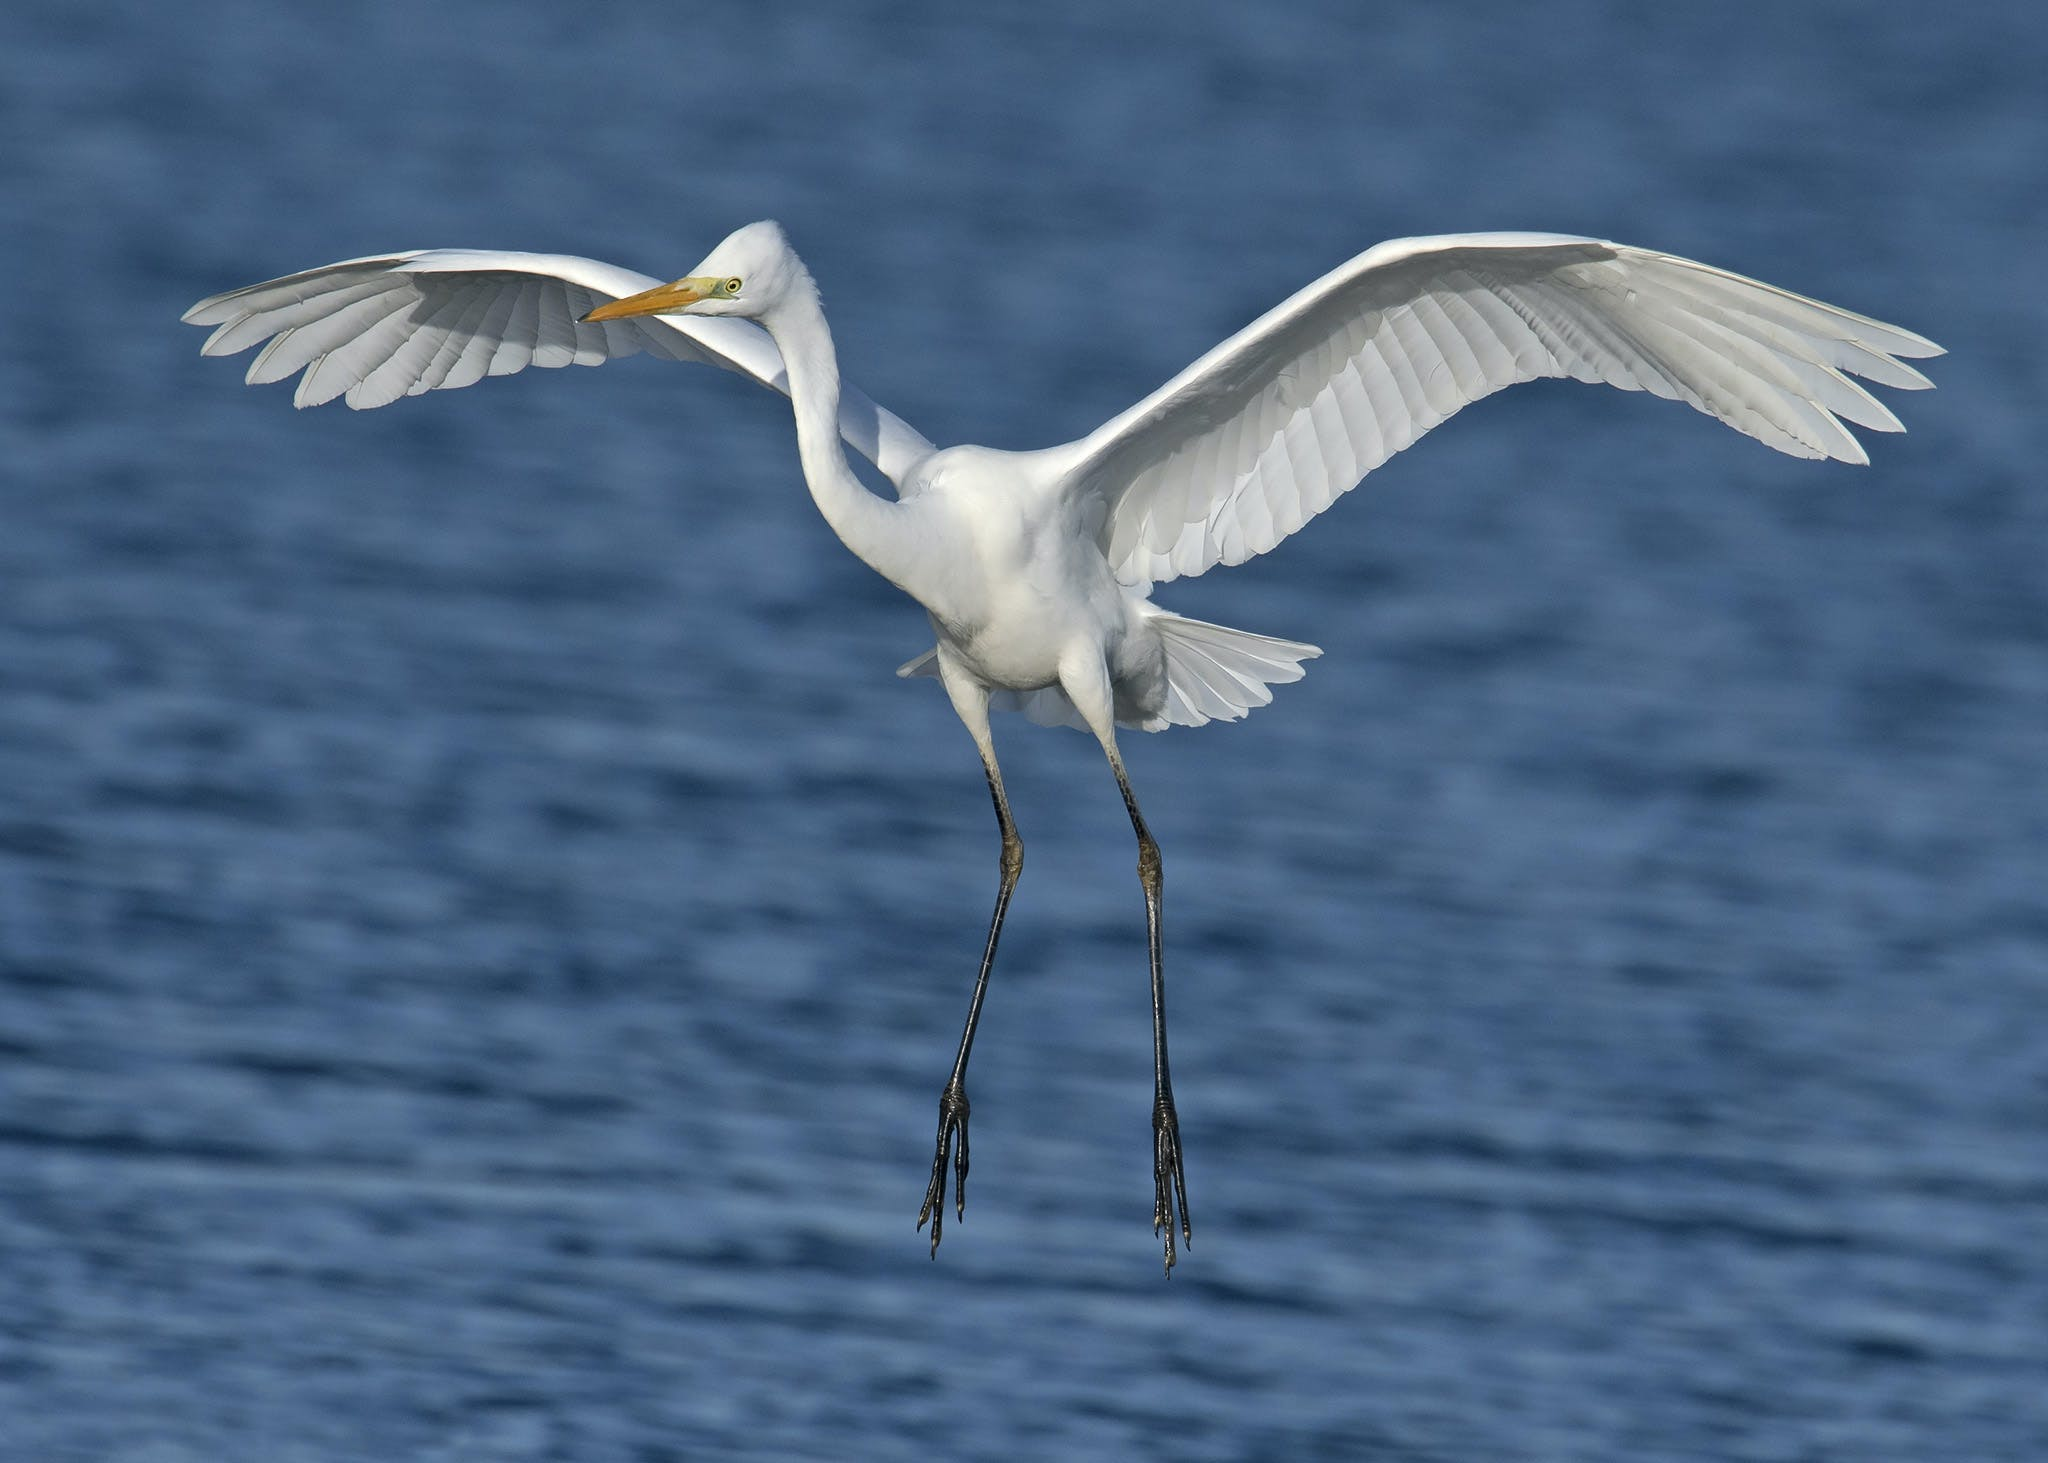 Close-up Photography of a White Egret